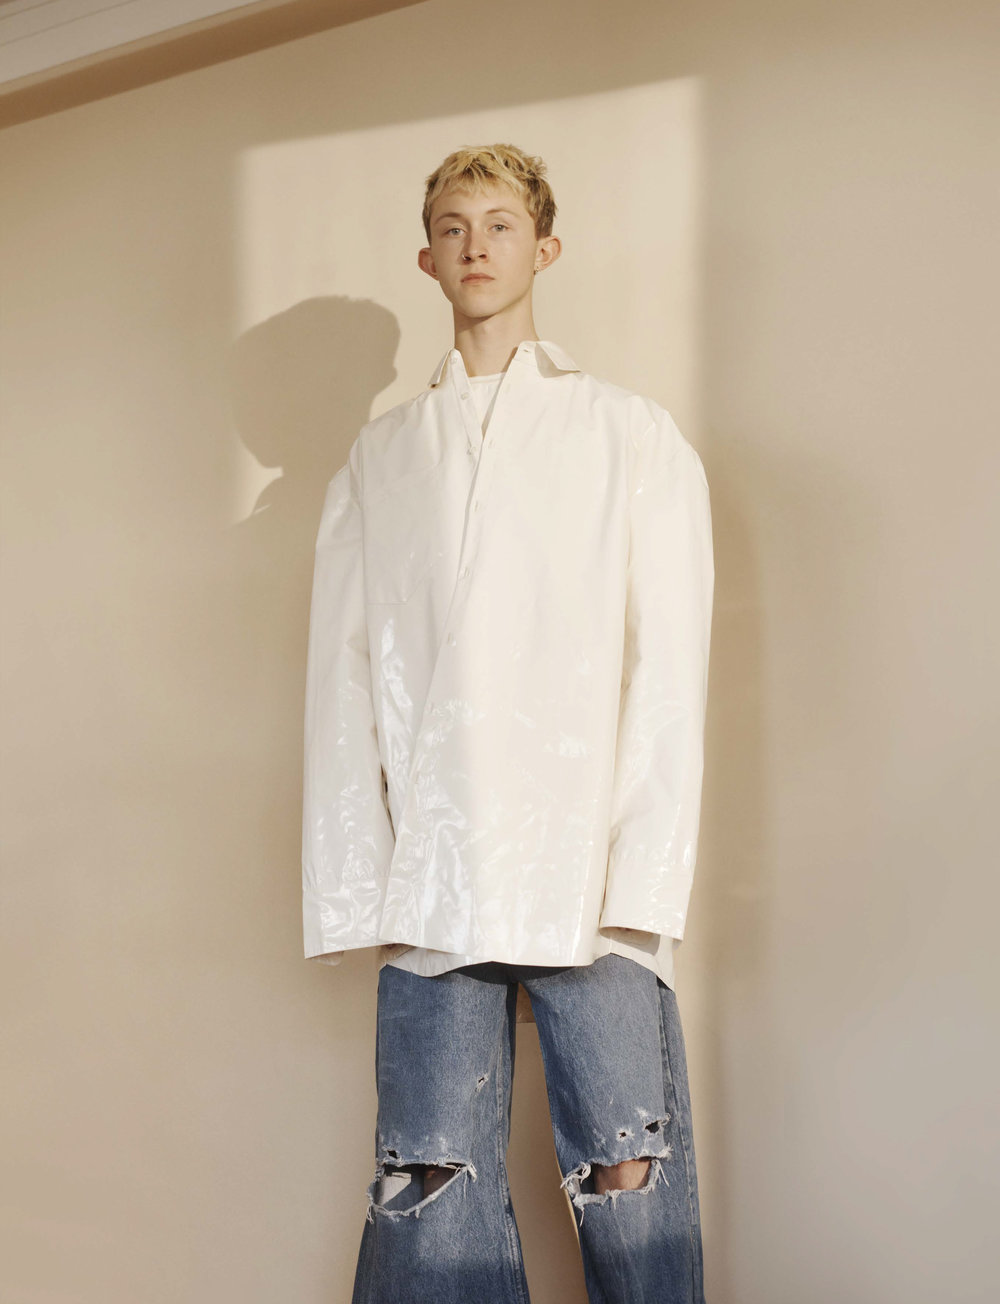 MODEL WEARS SS18 PLASSIC BUTTON-DOWN SHIRT & ULTRA LOOSE STONEWASH JEANS